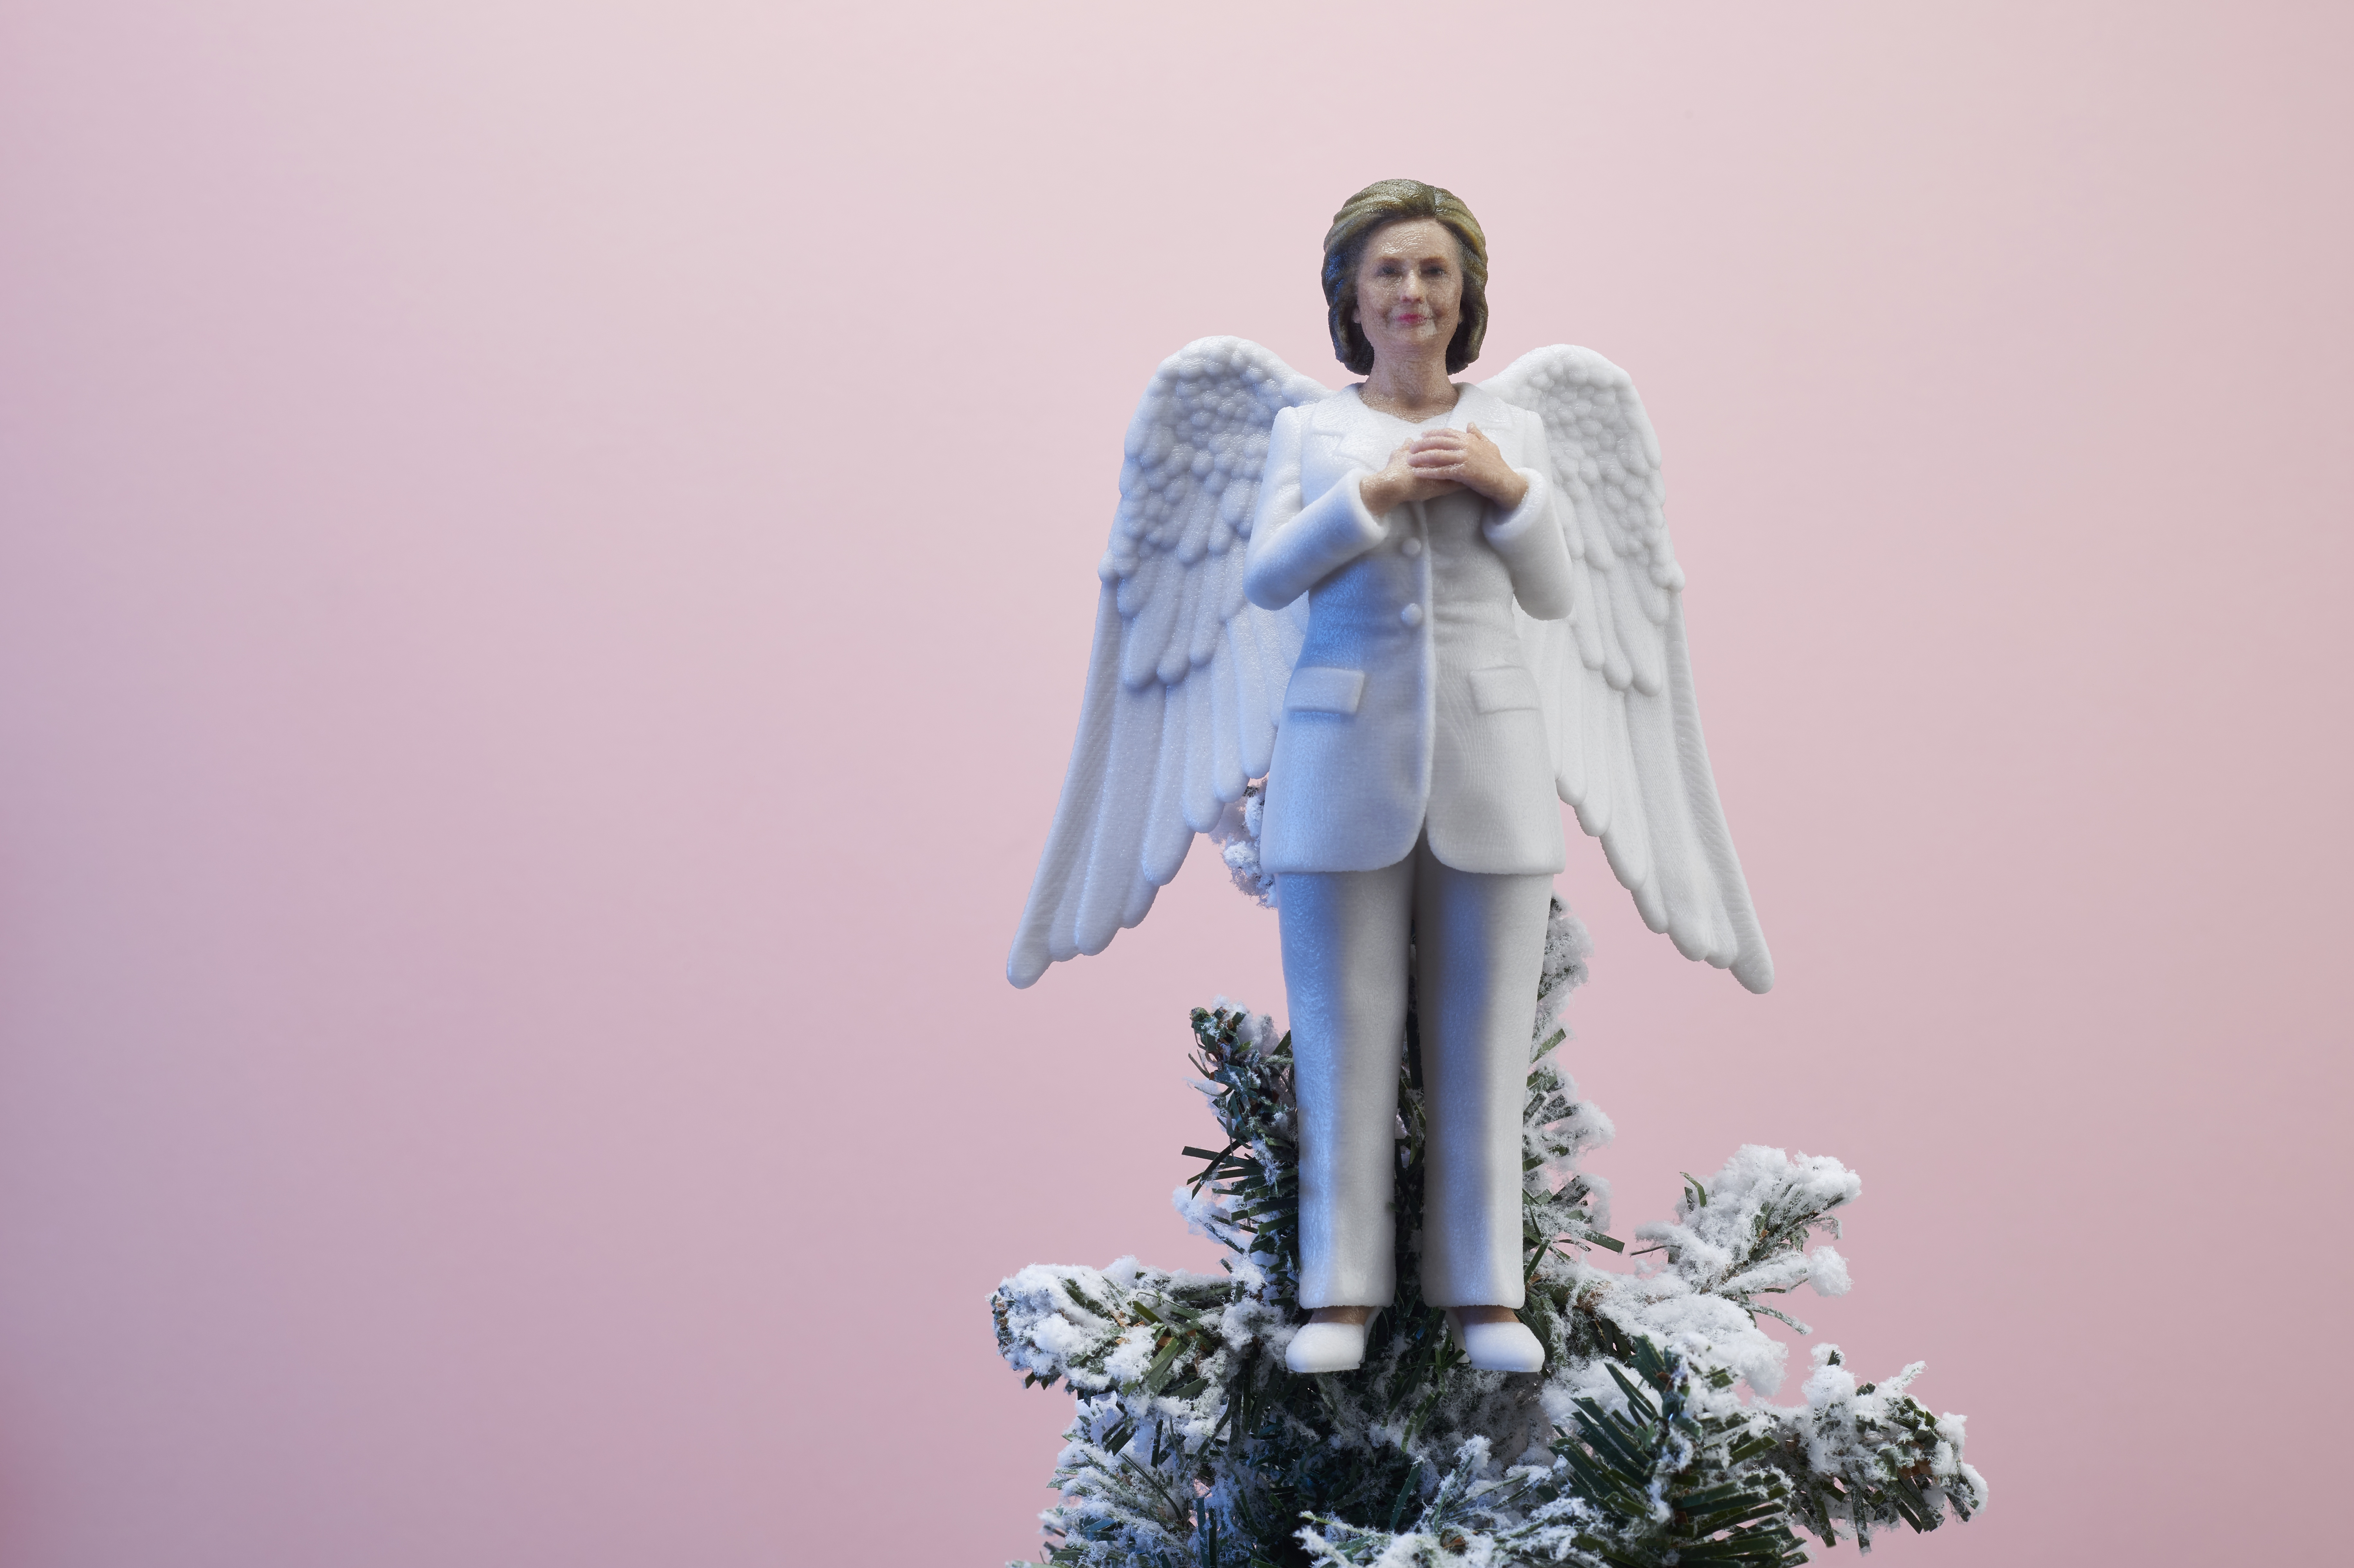 You Can Now Top Your Christmas Tree with One of 2017's Most Inspirational Women